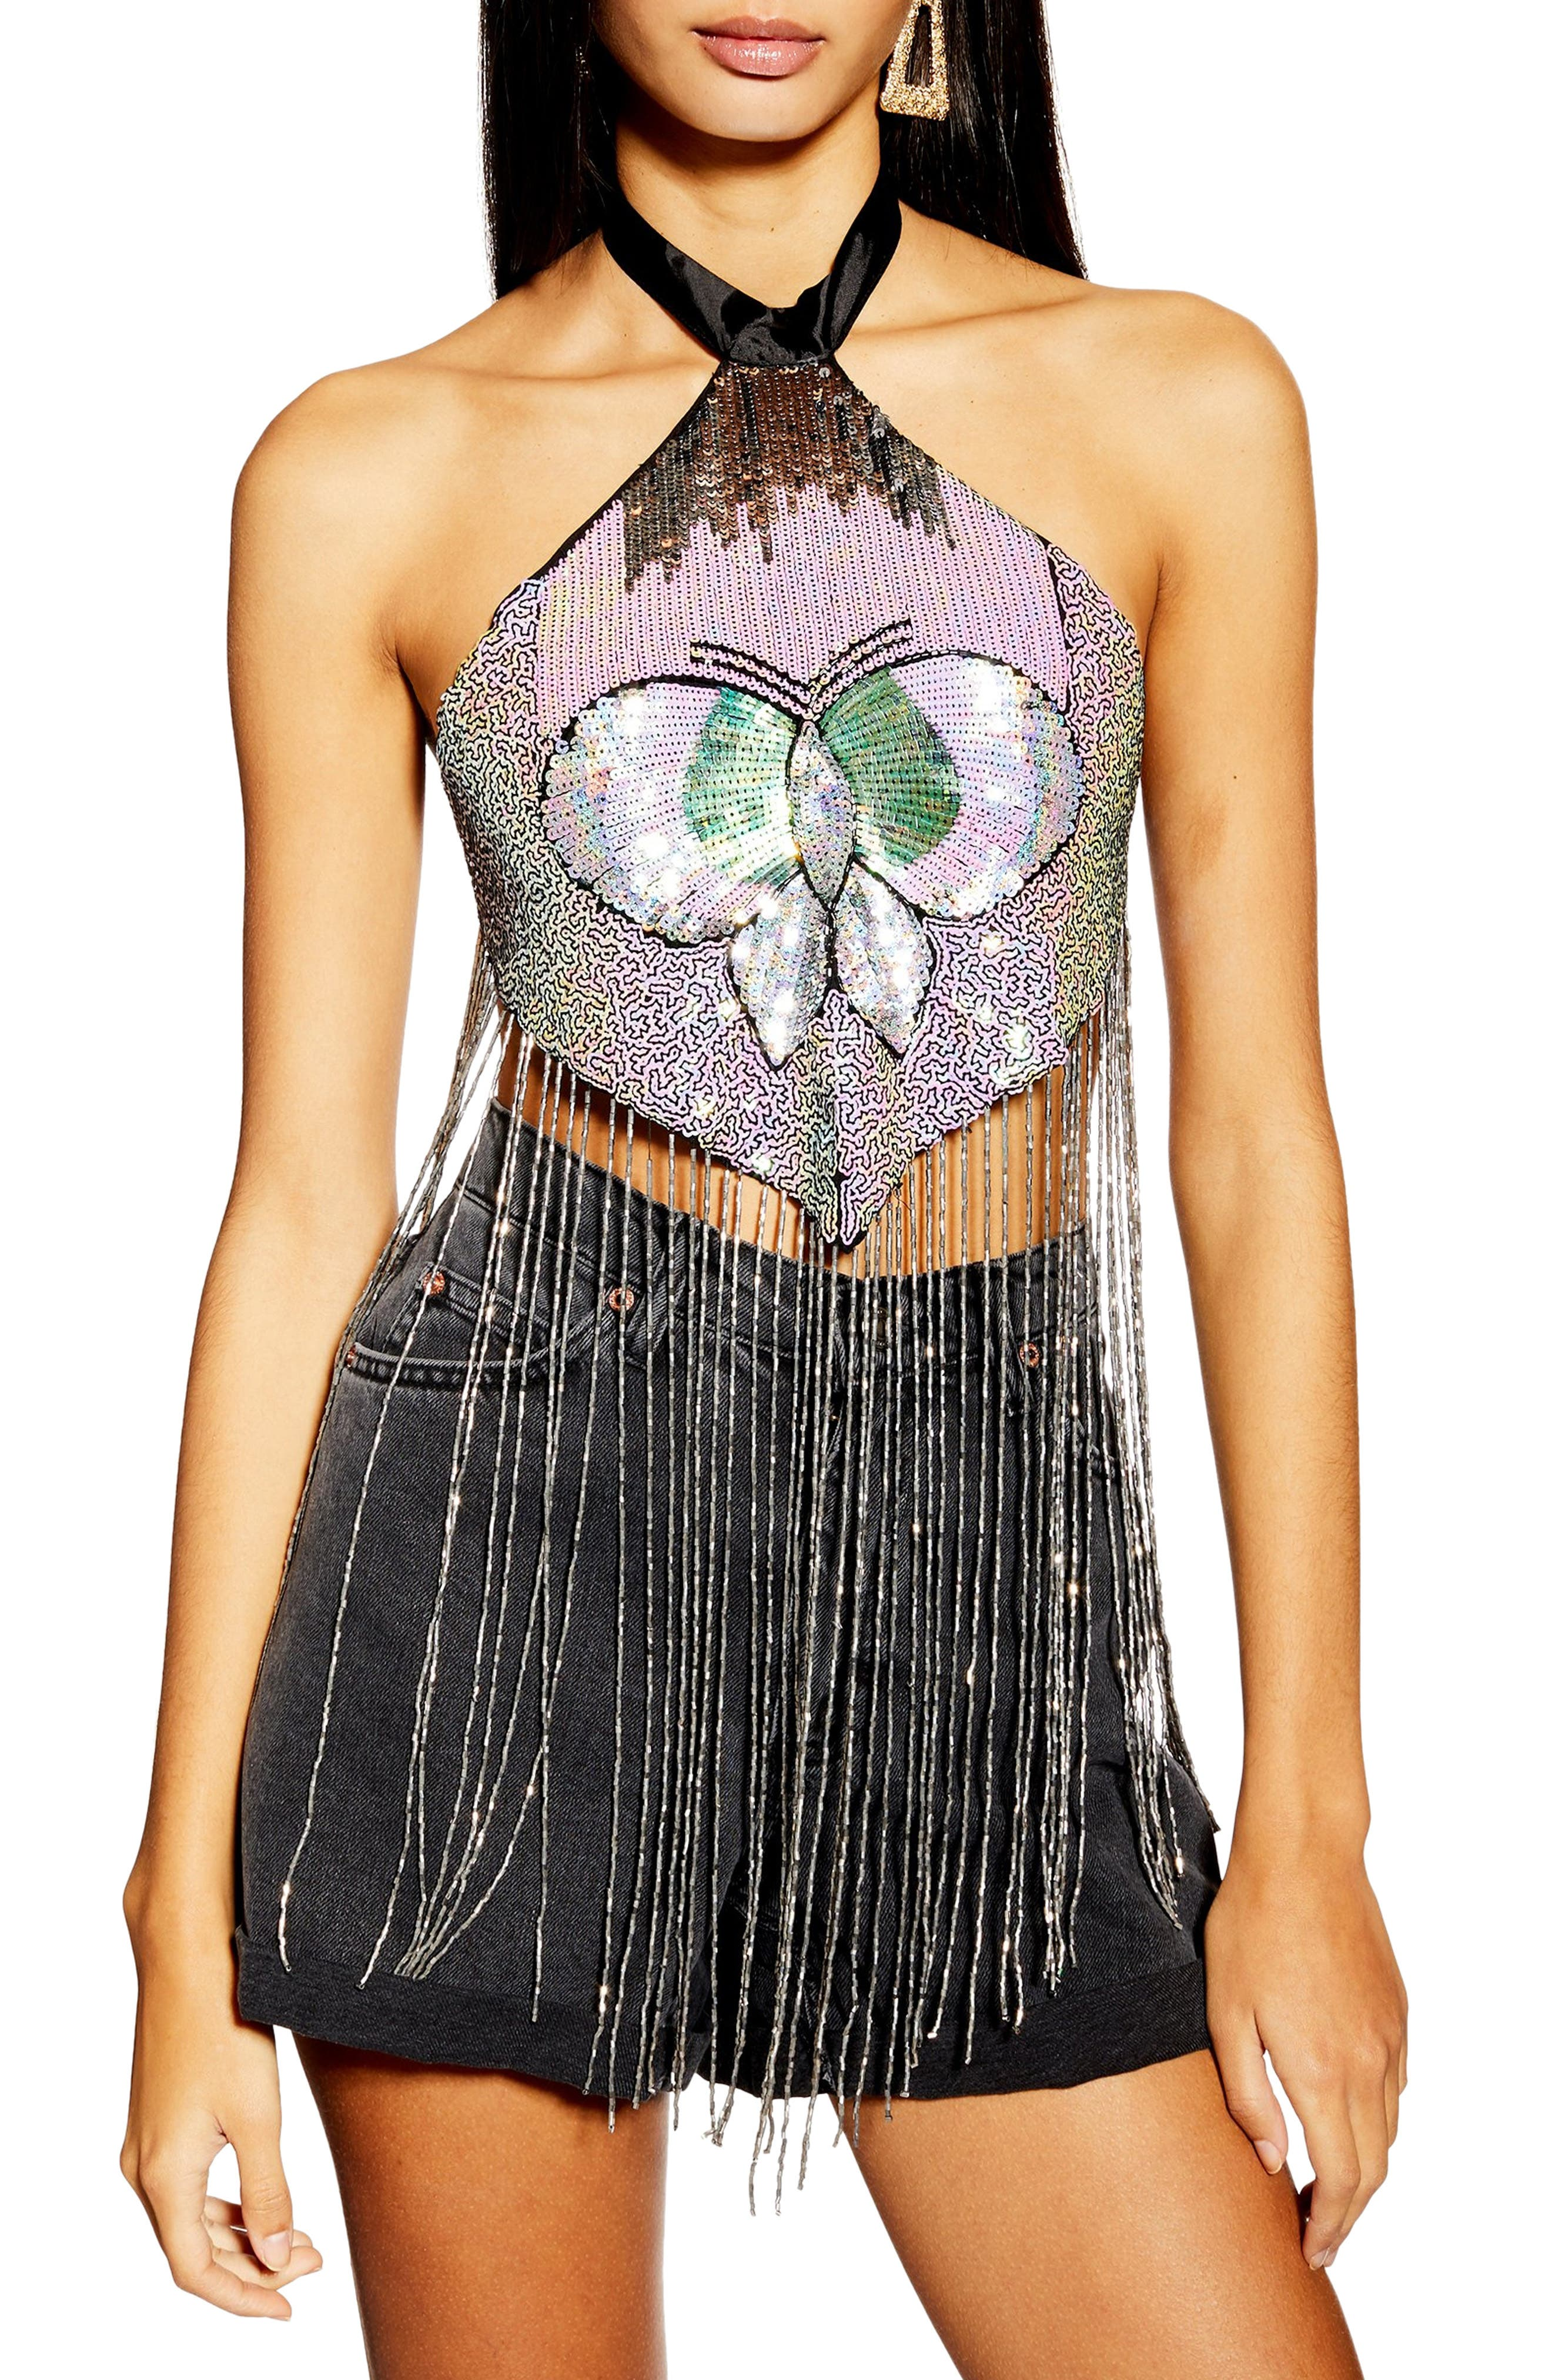 TOPSHOP, Butterfly Halter Top, Main thumbnail 1, color, SILVER MULTI